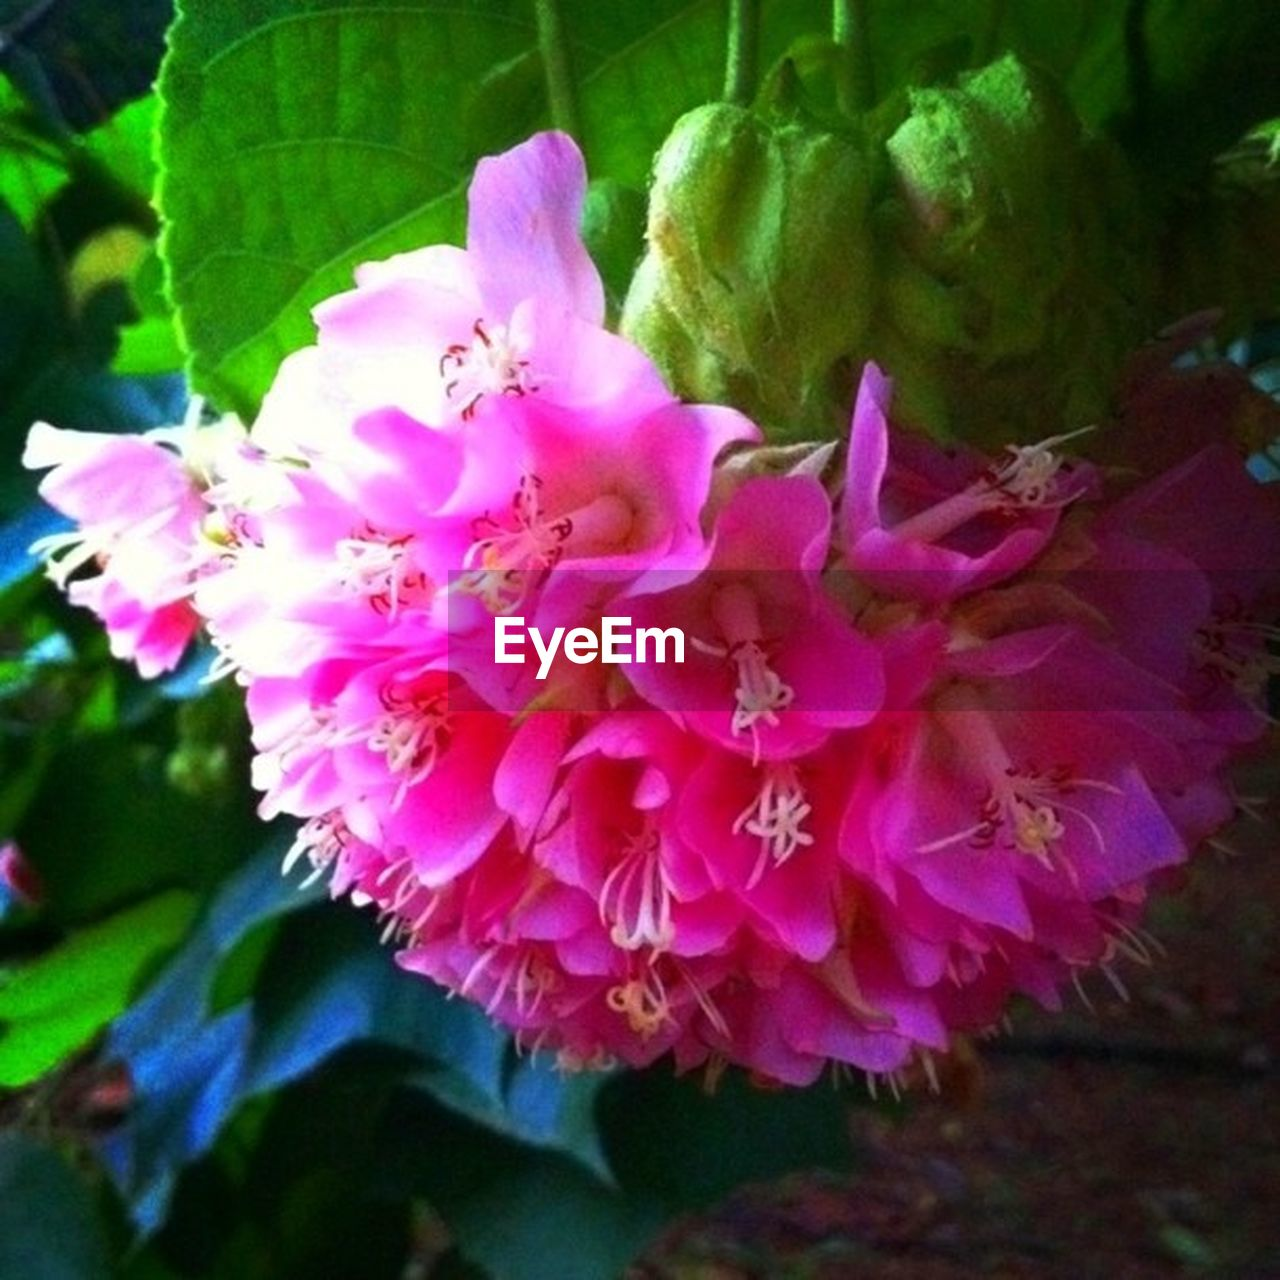 flower, beauty in nature, growth, petal, nature, fragility, pink color, plant, close-up, no people, flower head, freshness, blossom, day, outdoors, blooming